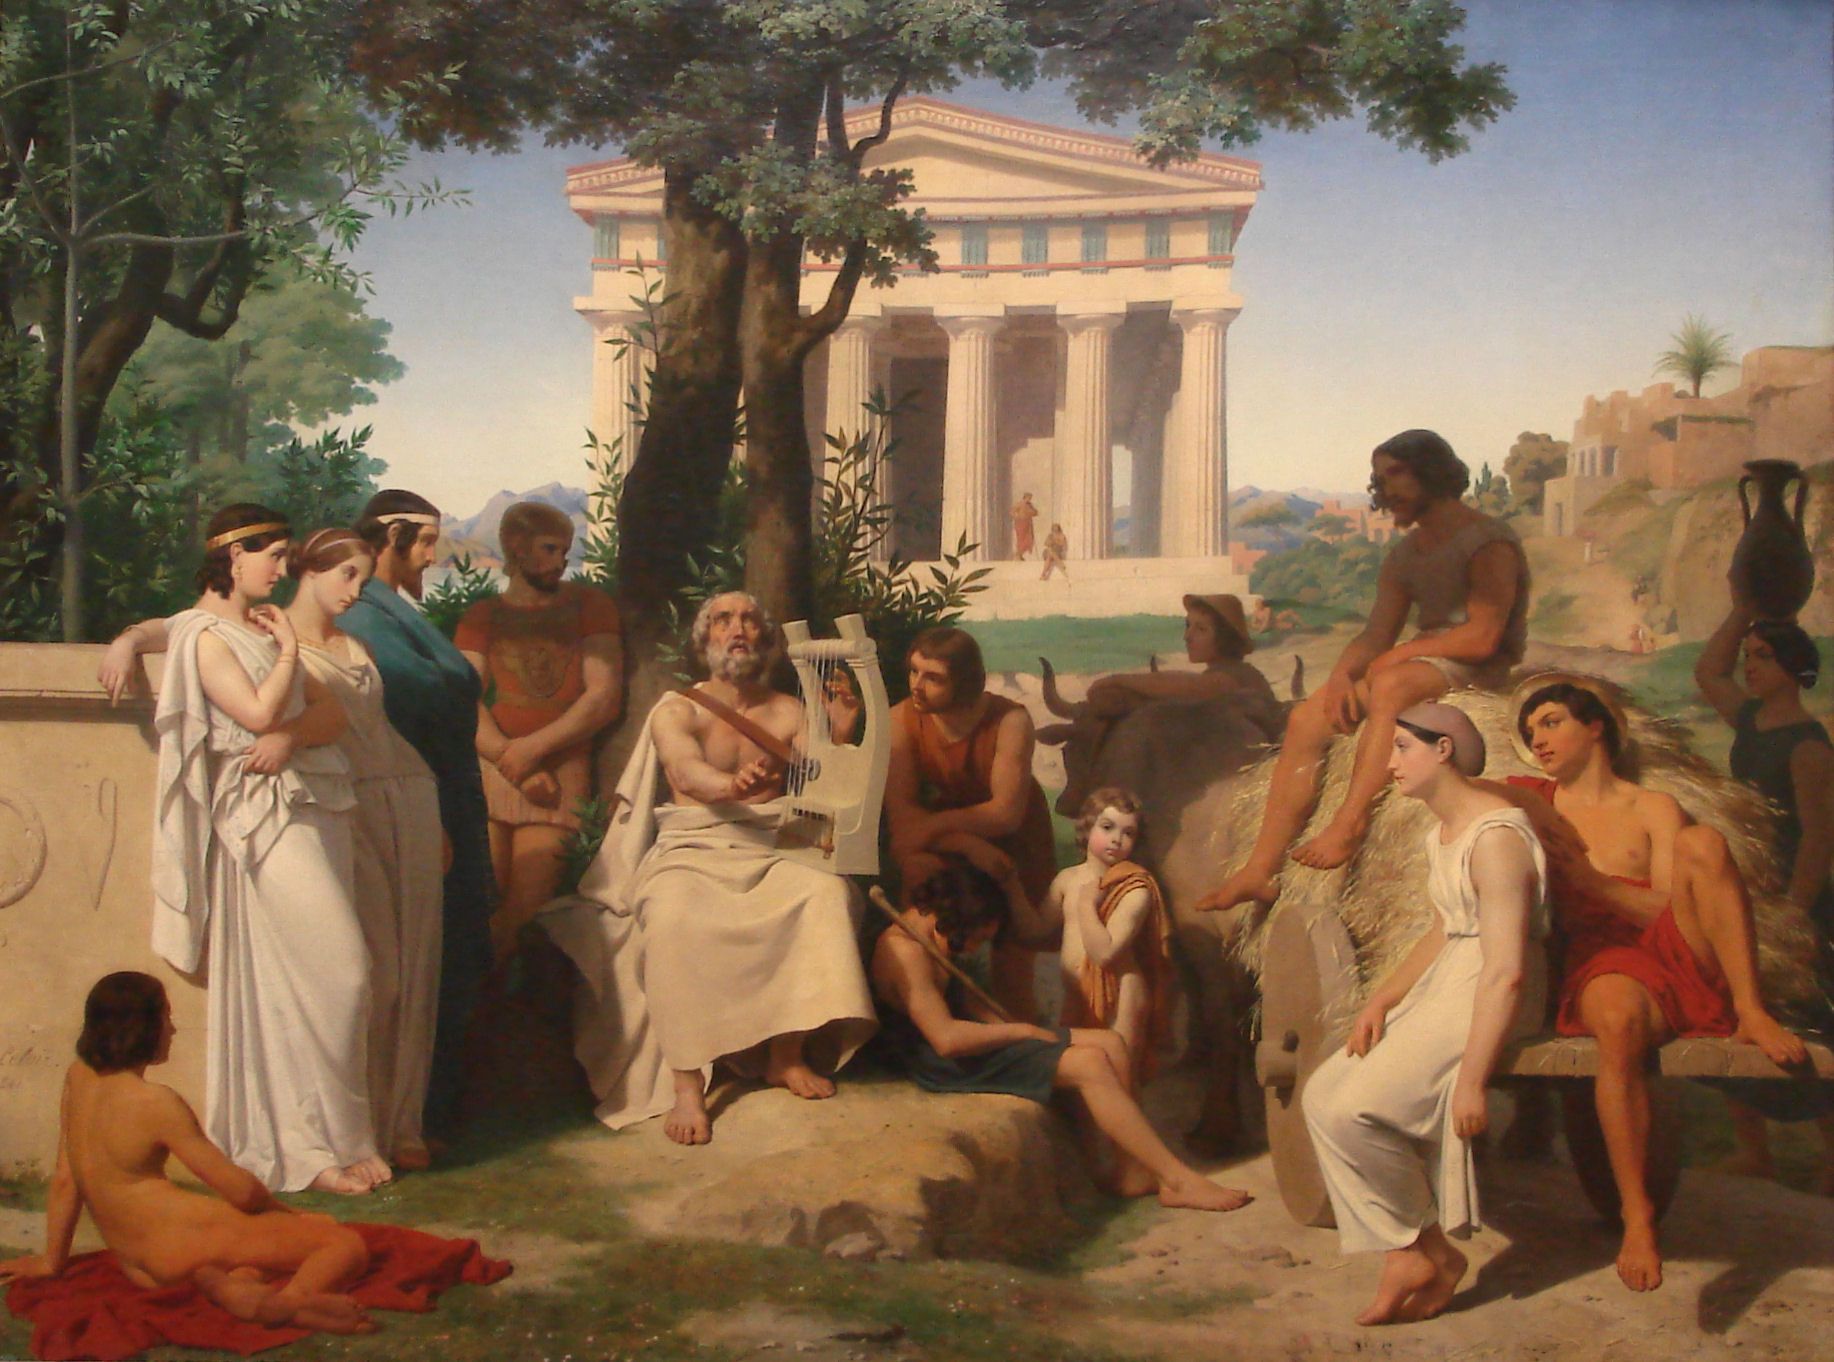 an analysis of the theme of religion in ancient greece The ancient greek language includes the forms of greek used in ancient greece and the ancient world from around the 9th century bce to the 6th century ce.